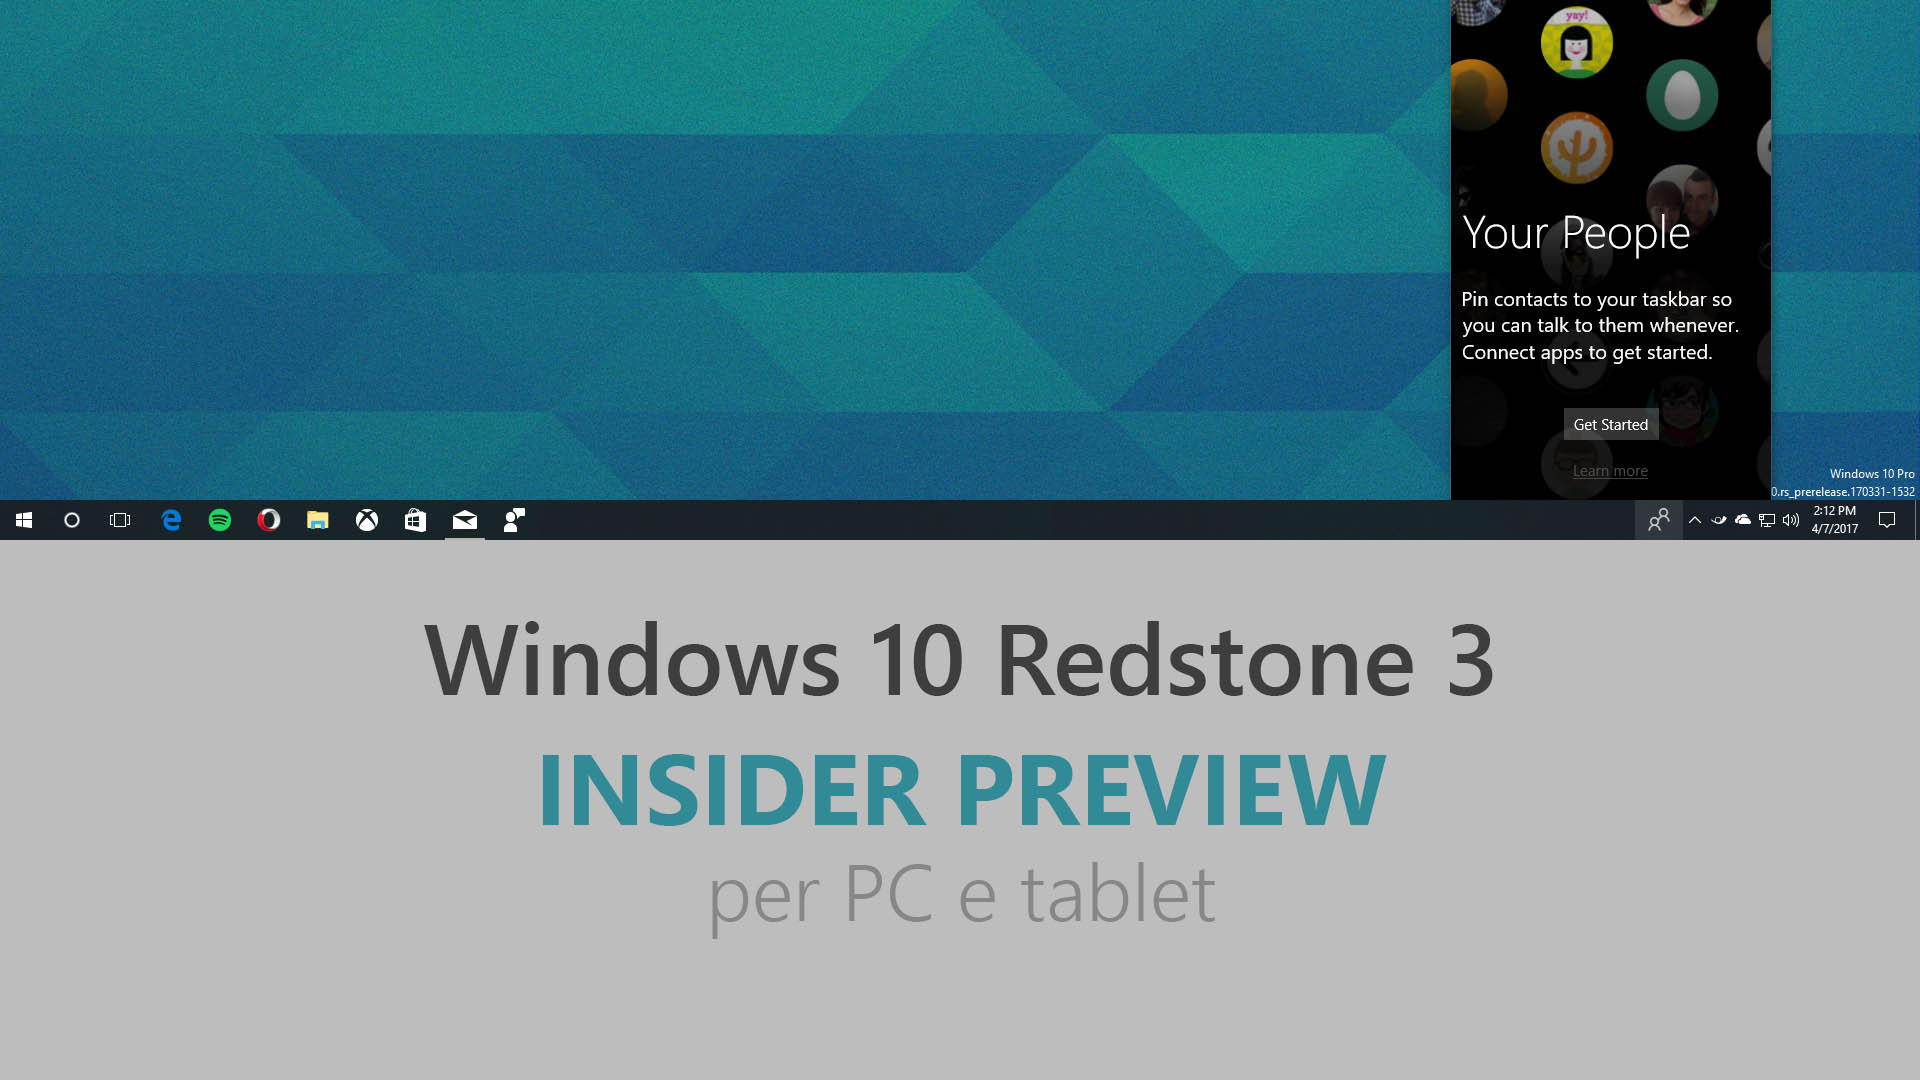 Windows 10 - Redstone 3